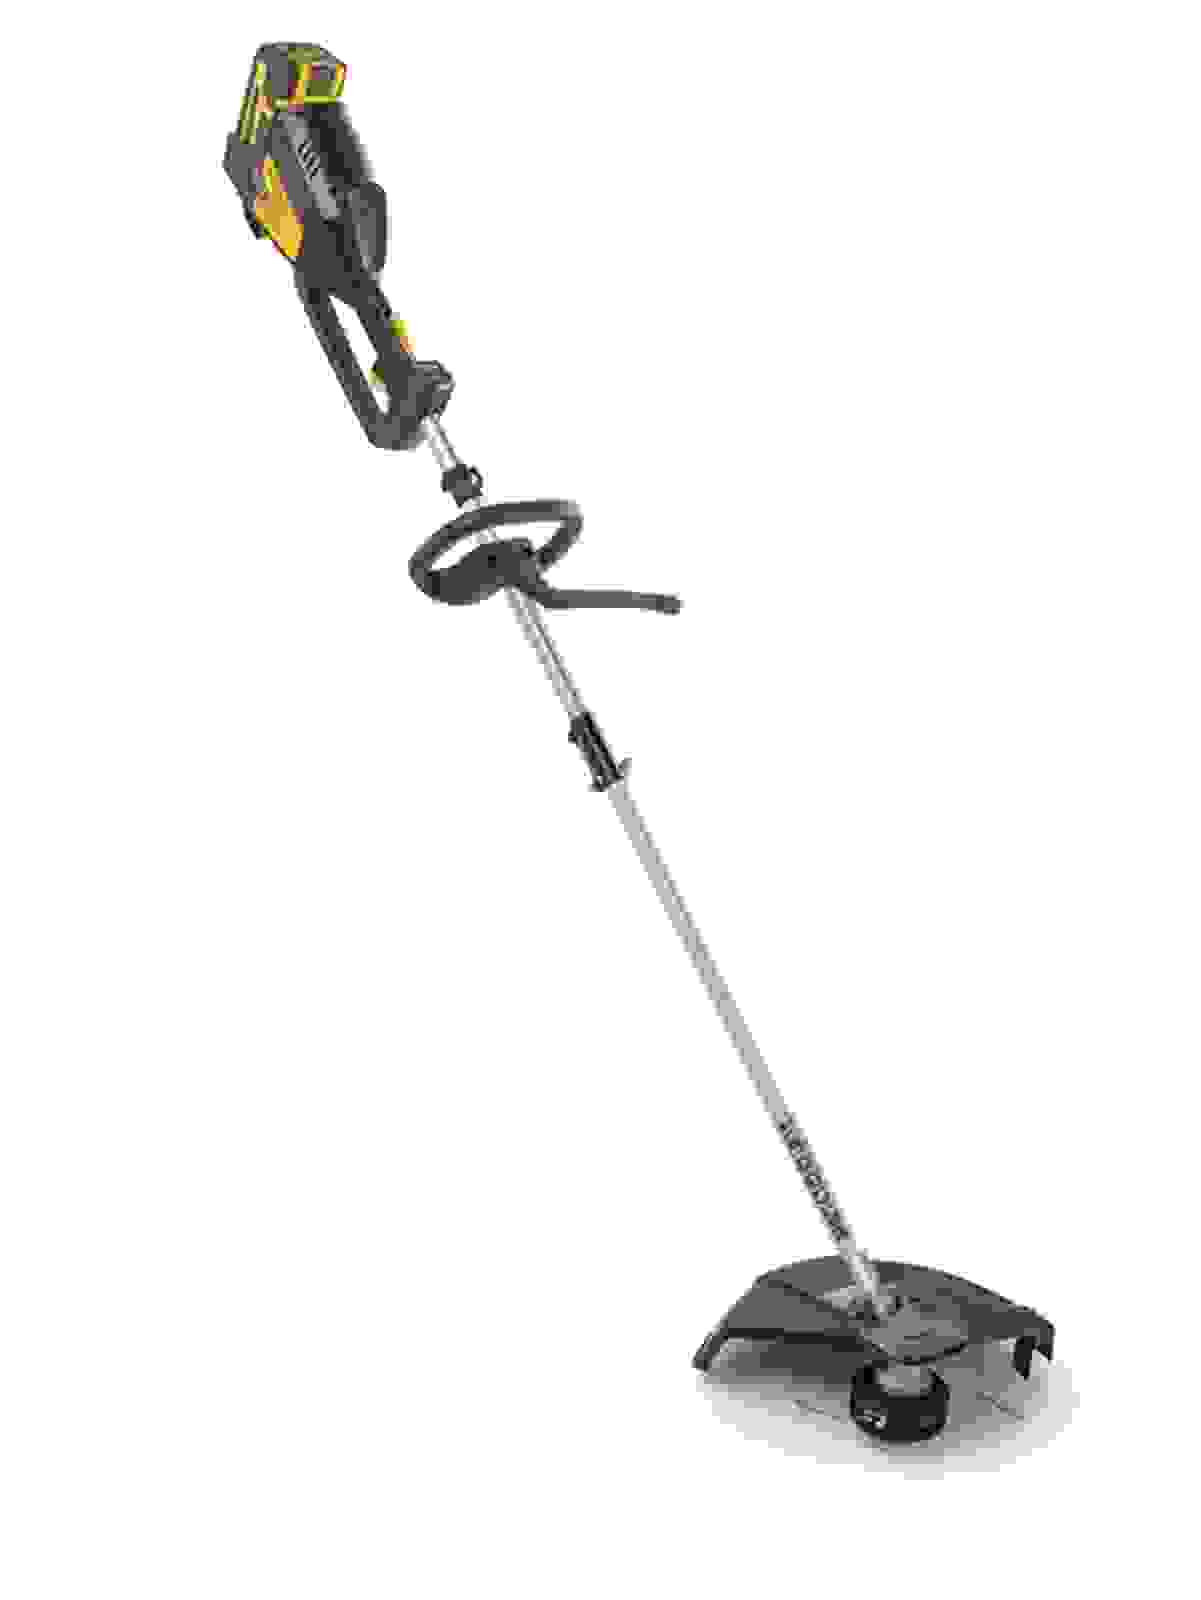 STIGA Battery Powered Brushcutter SBC 48 AE